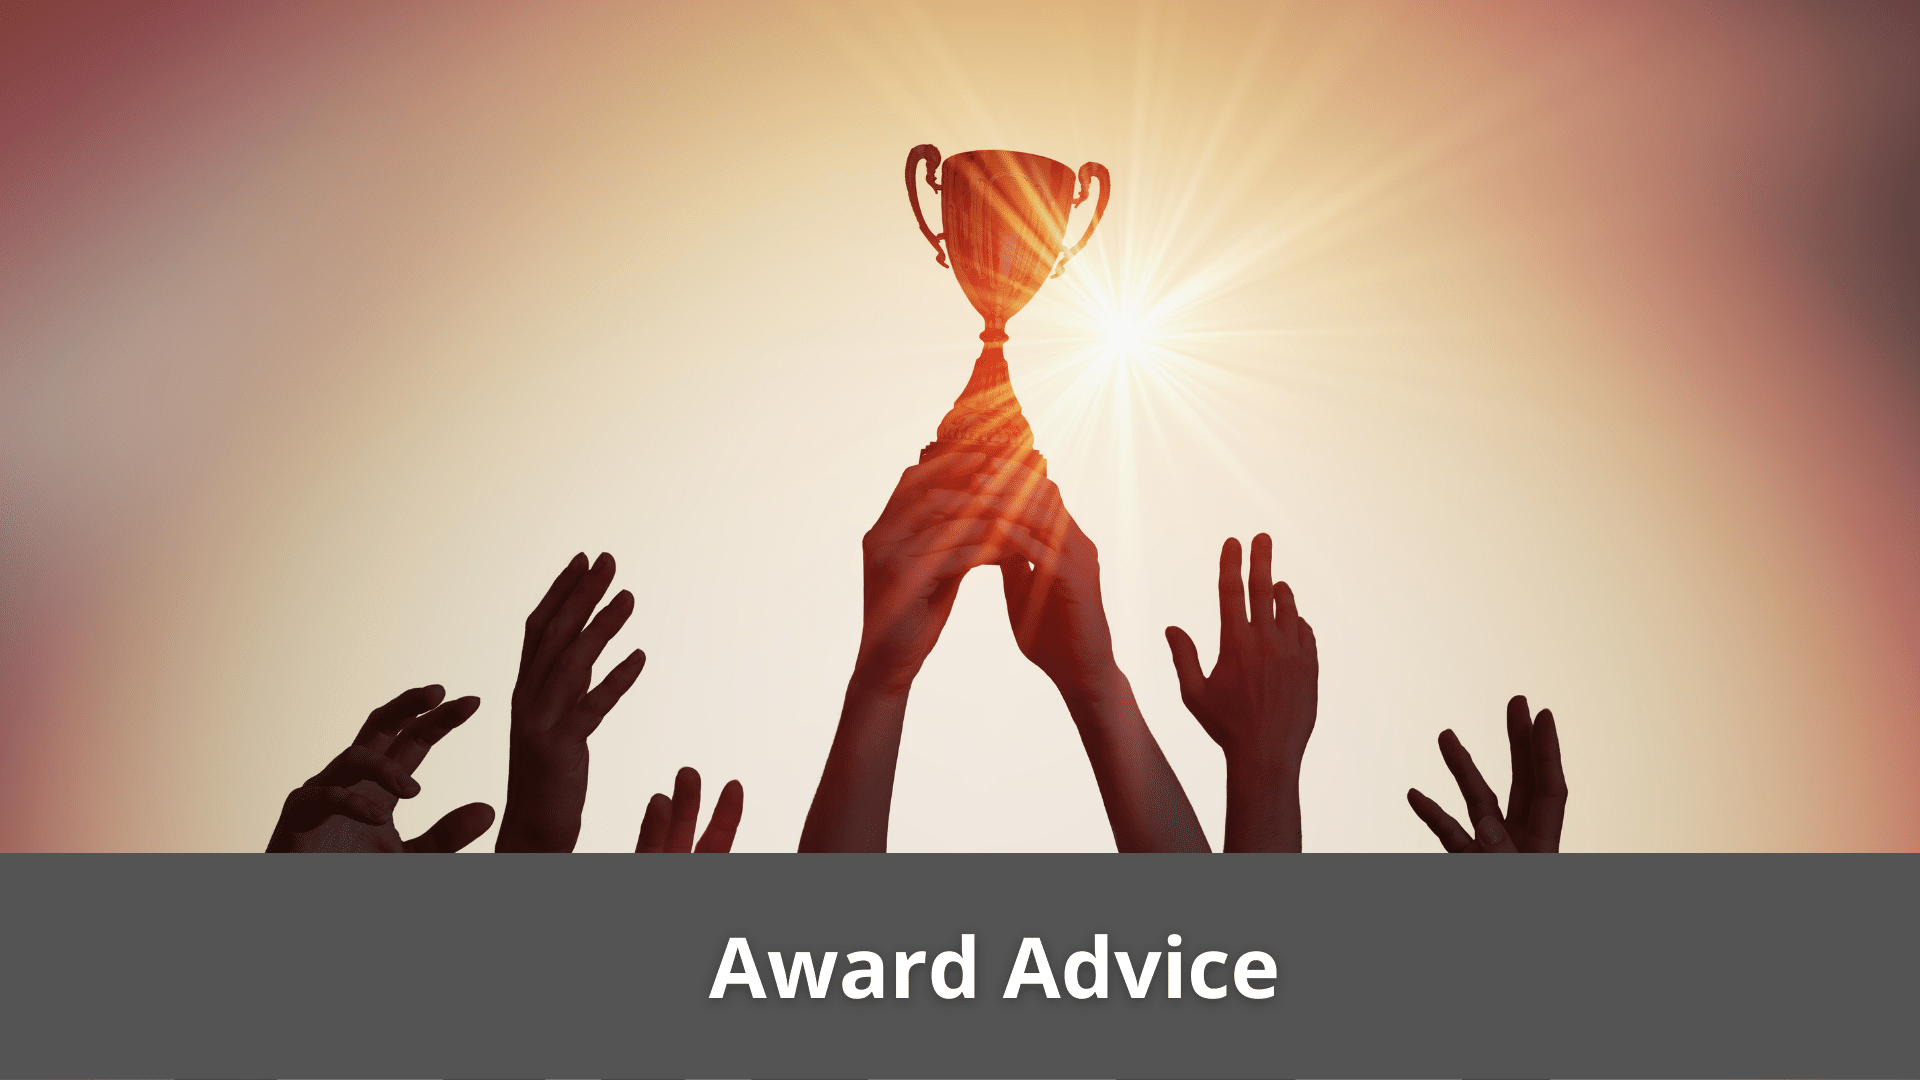 Award Advice - Financial Services Can Qualify For Tax Shelters 41